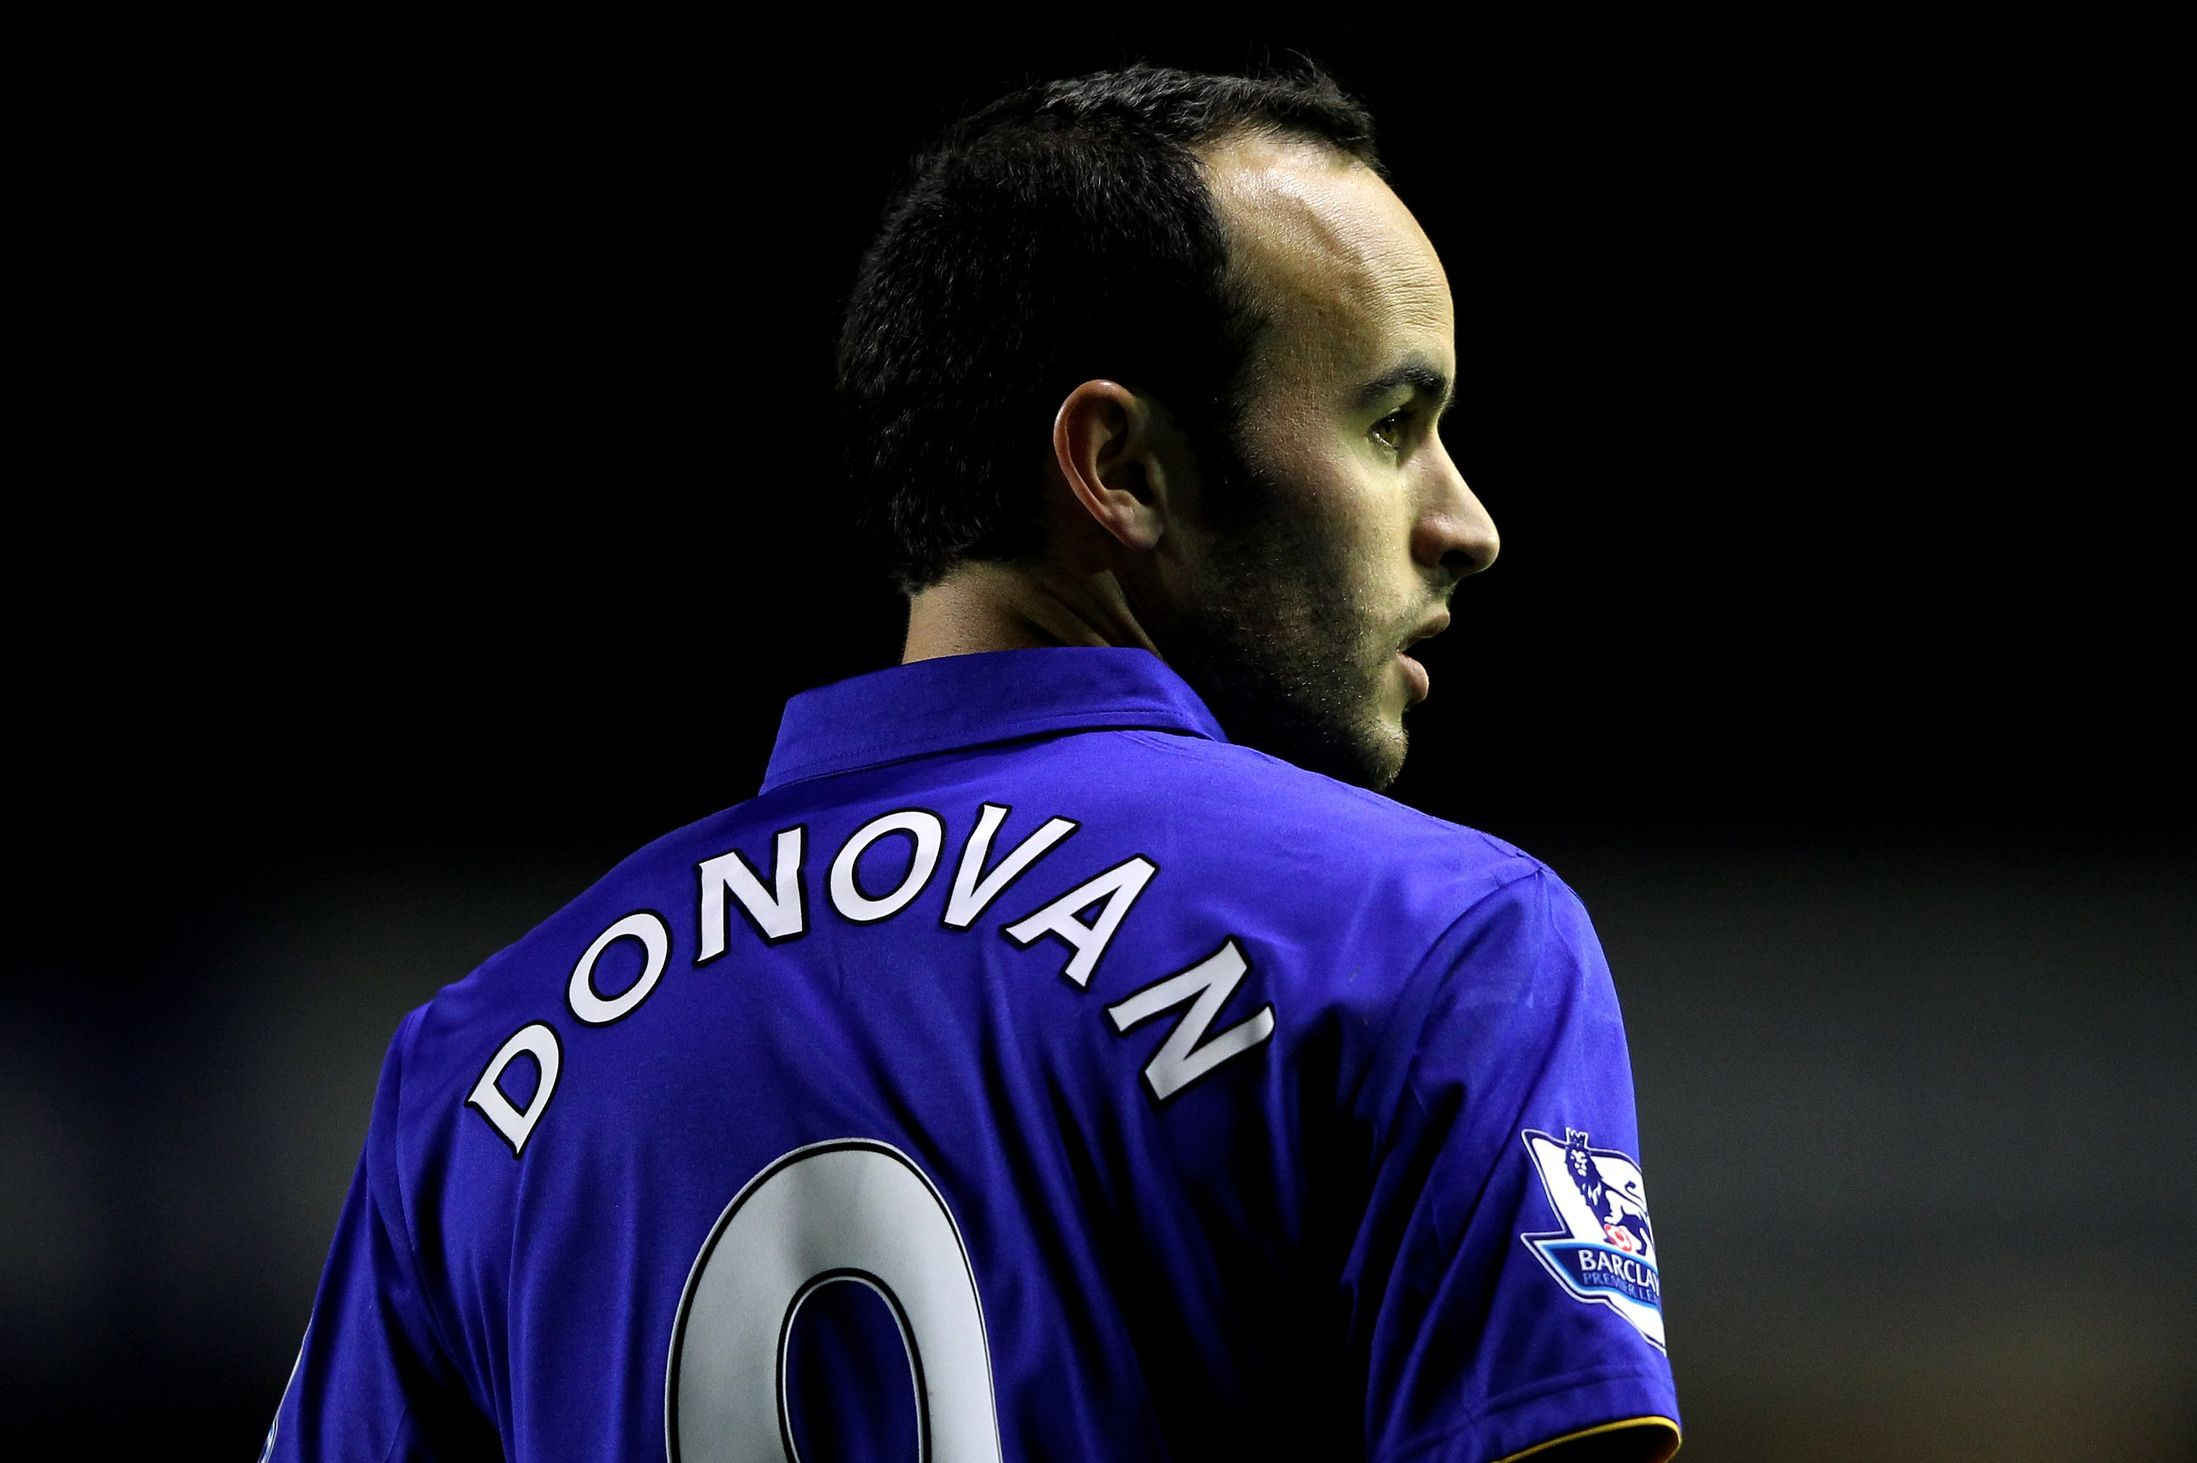 Landon Donovan Wallpapers | Hd Wallpapers